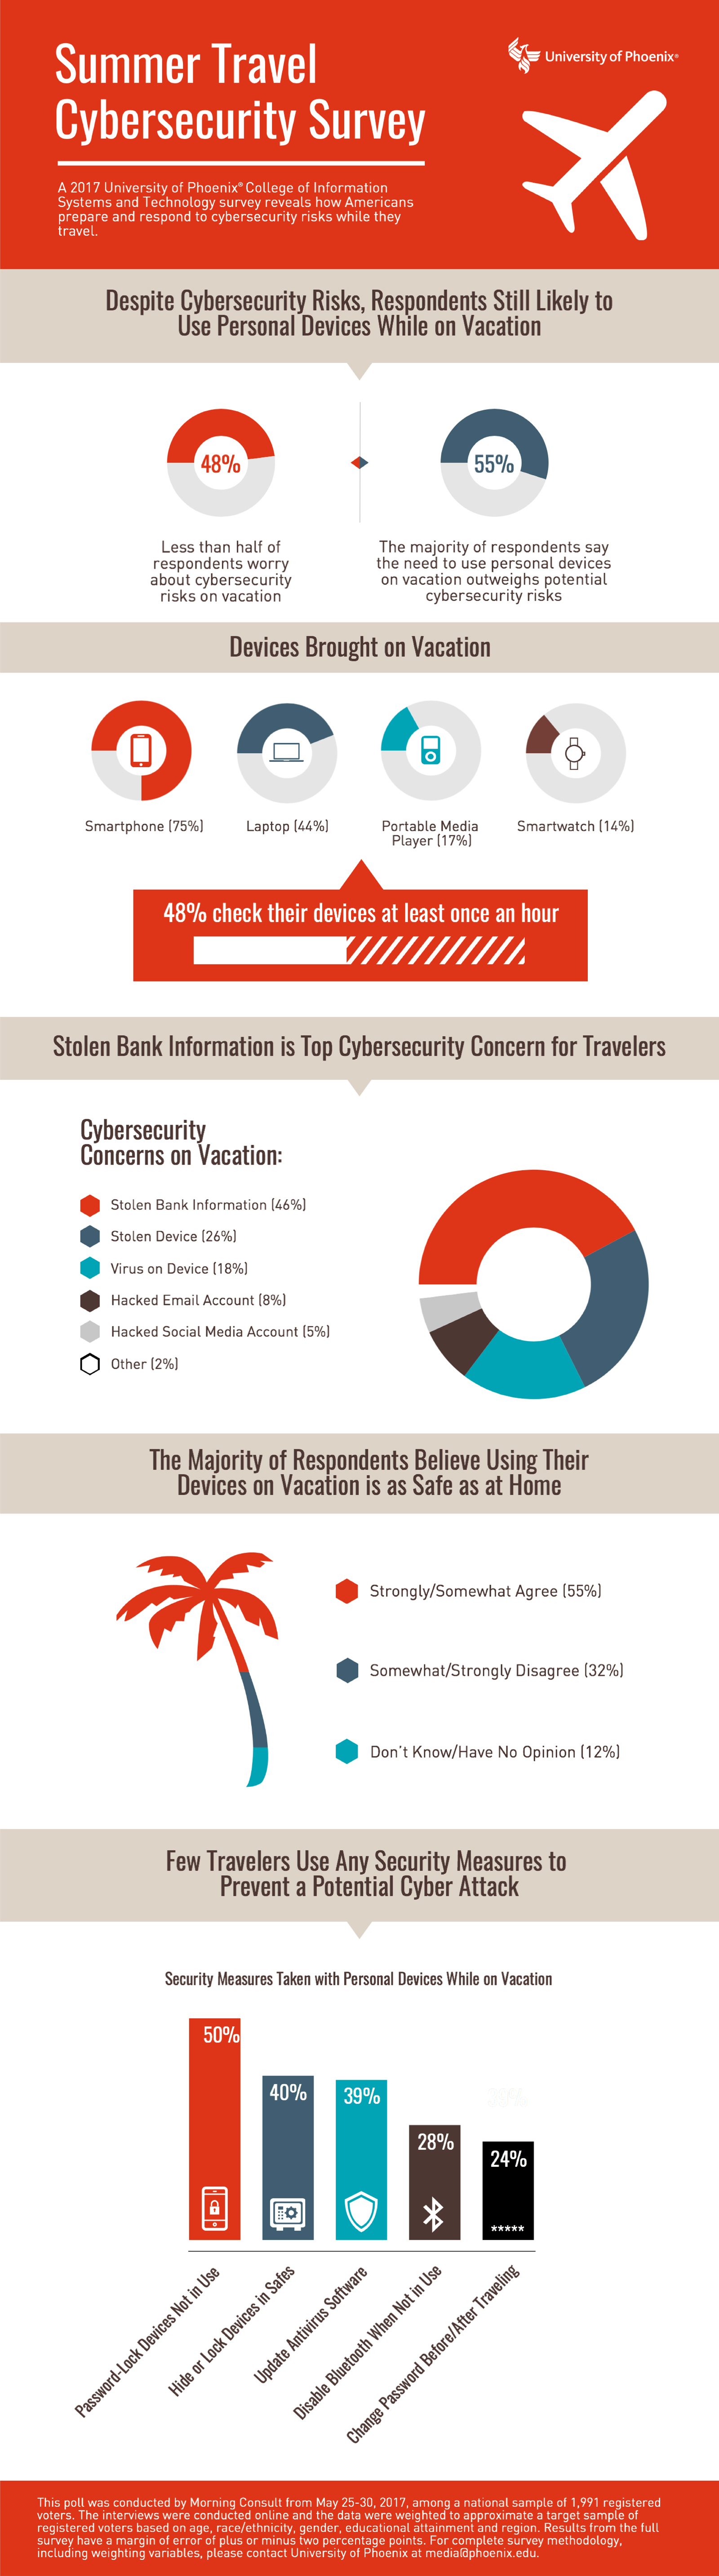 The Need to Use Smartphones and Other Personal Electronic Devices on Vacation Outweighs Cybersecurity Risks for Majority of Travelers